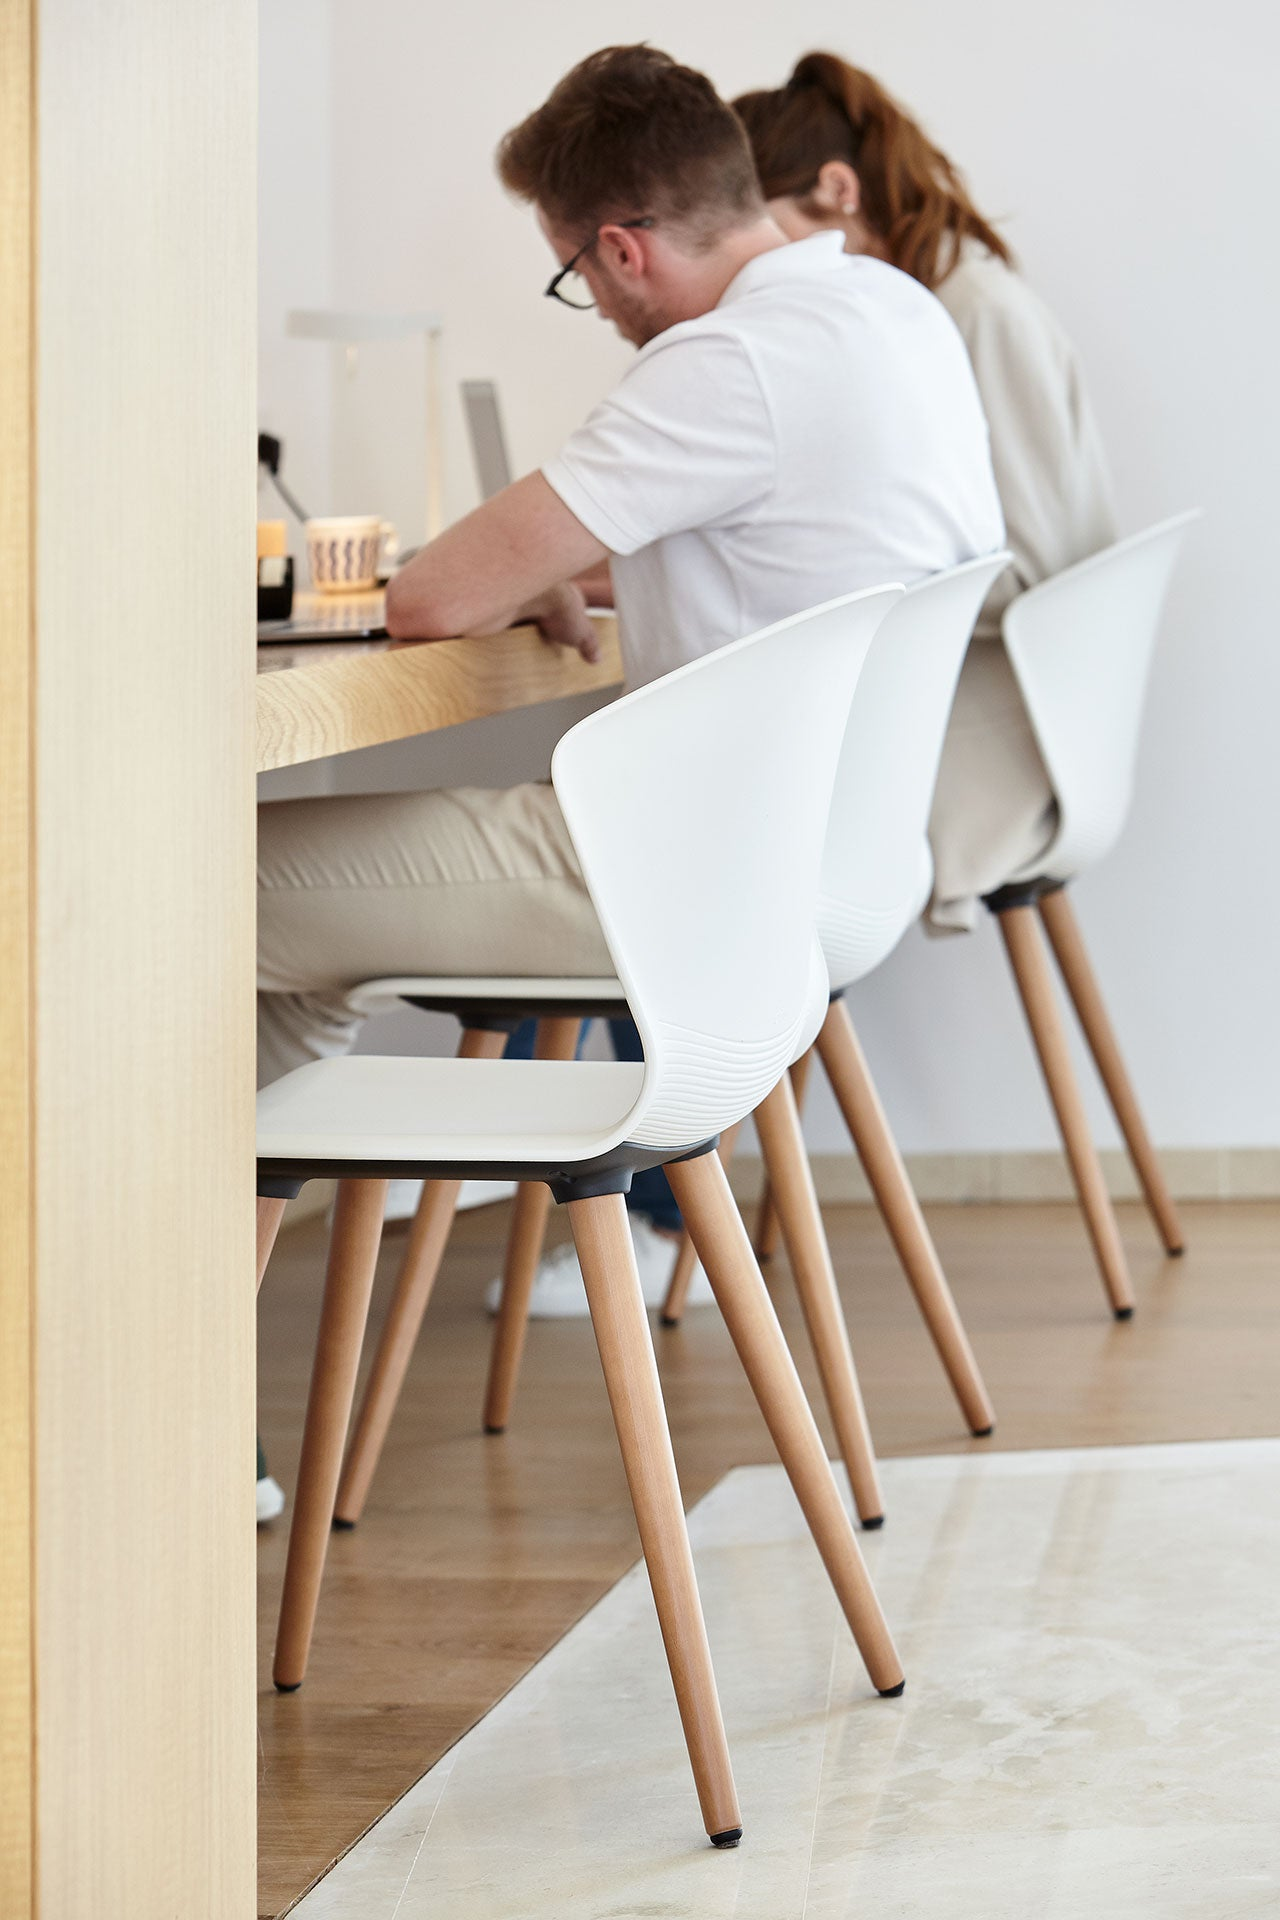 Actiu Whass Wooden Legs 4 Point Education Chair Collaborative Space